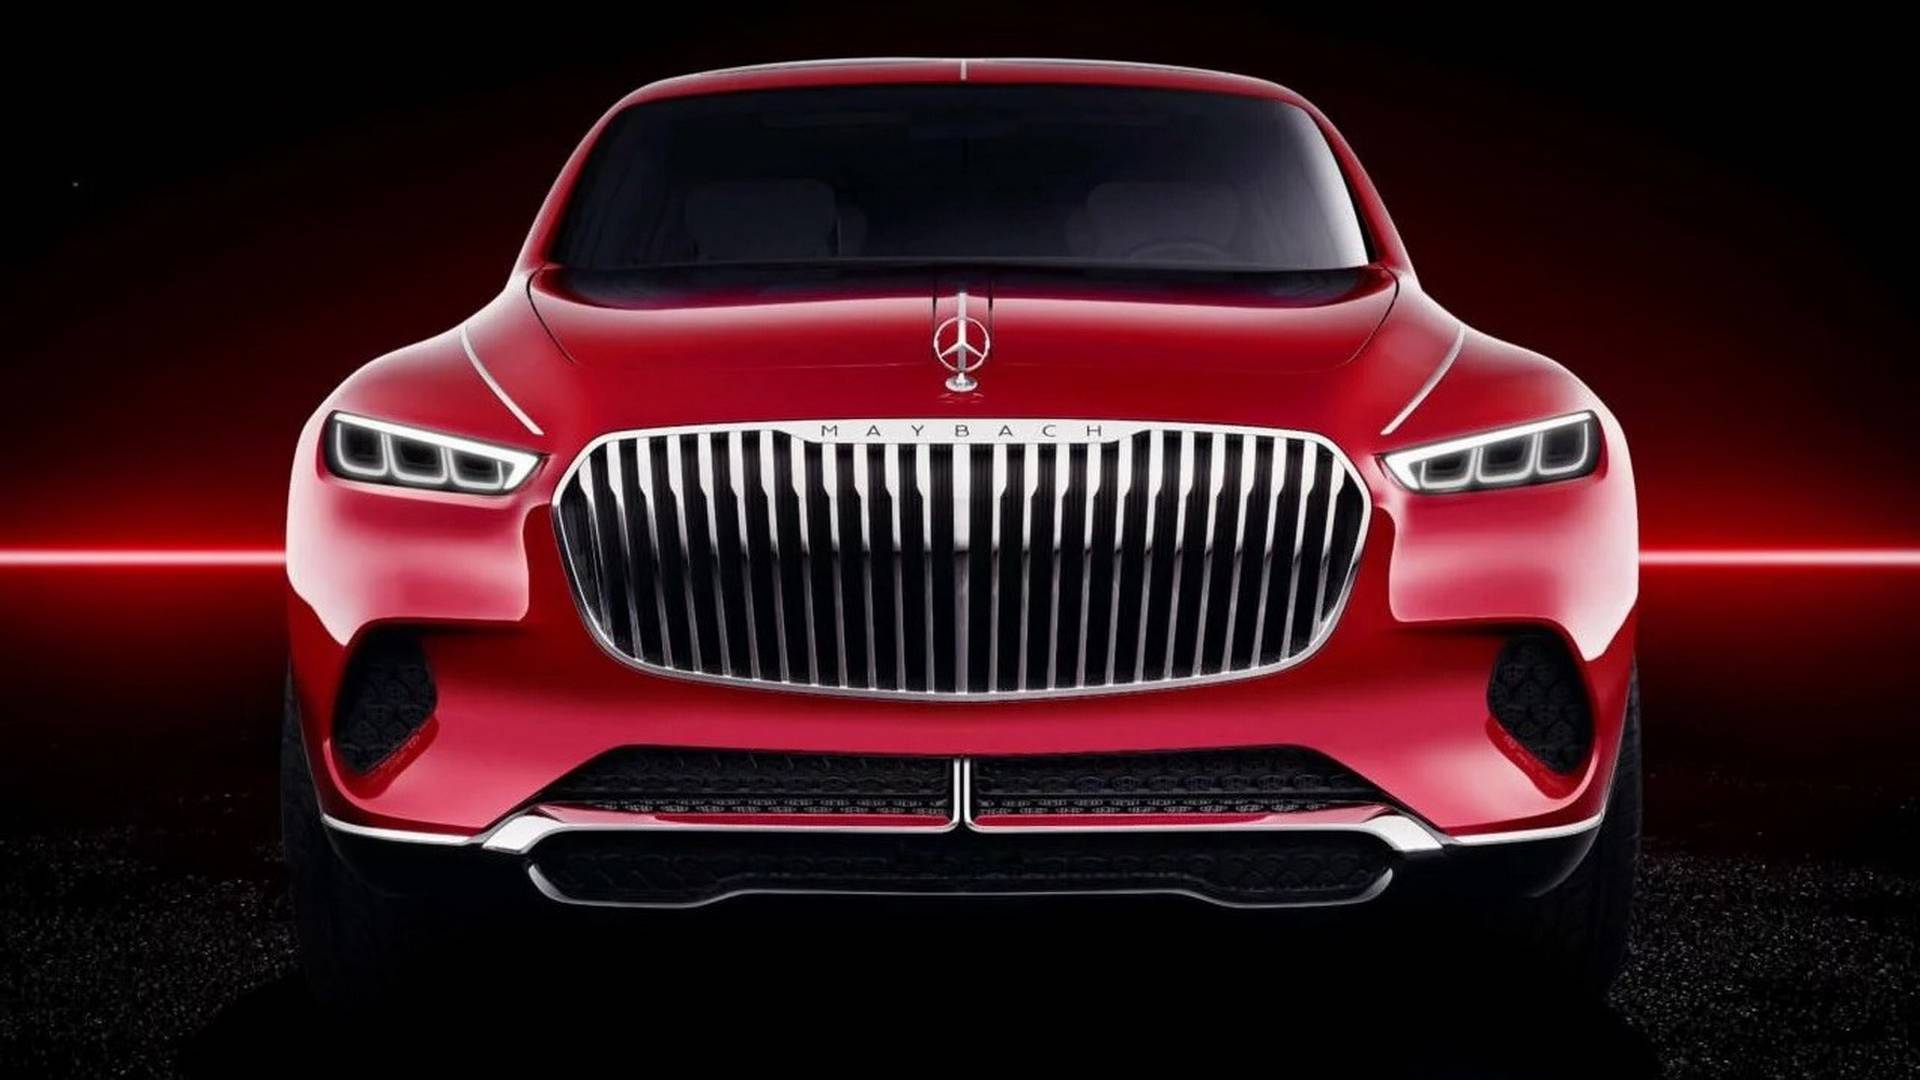 vision-mercedes-maybach-ultimate-luxury-leaked-official-image.jpg